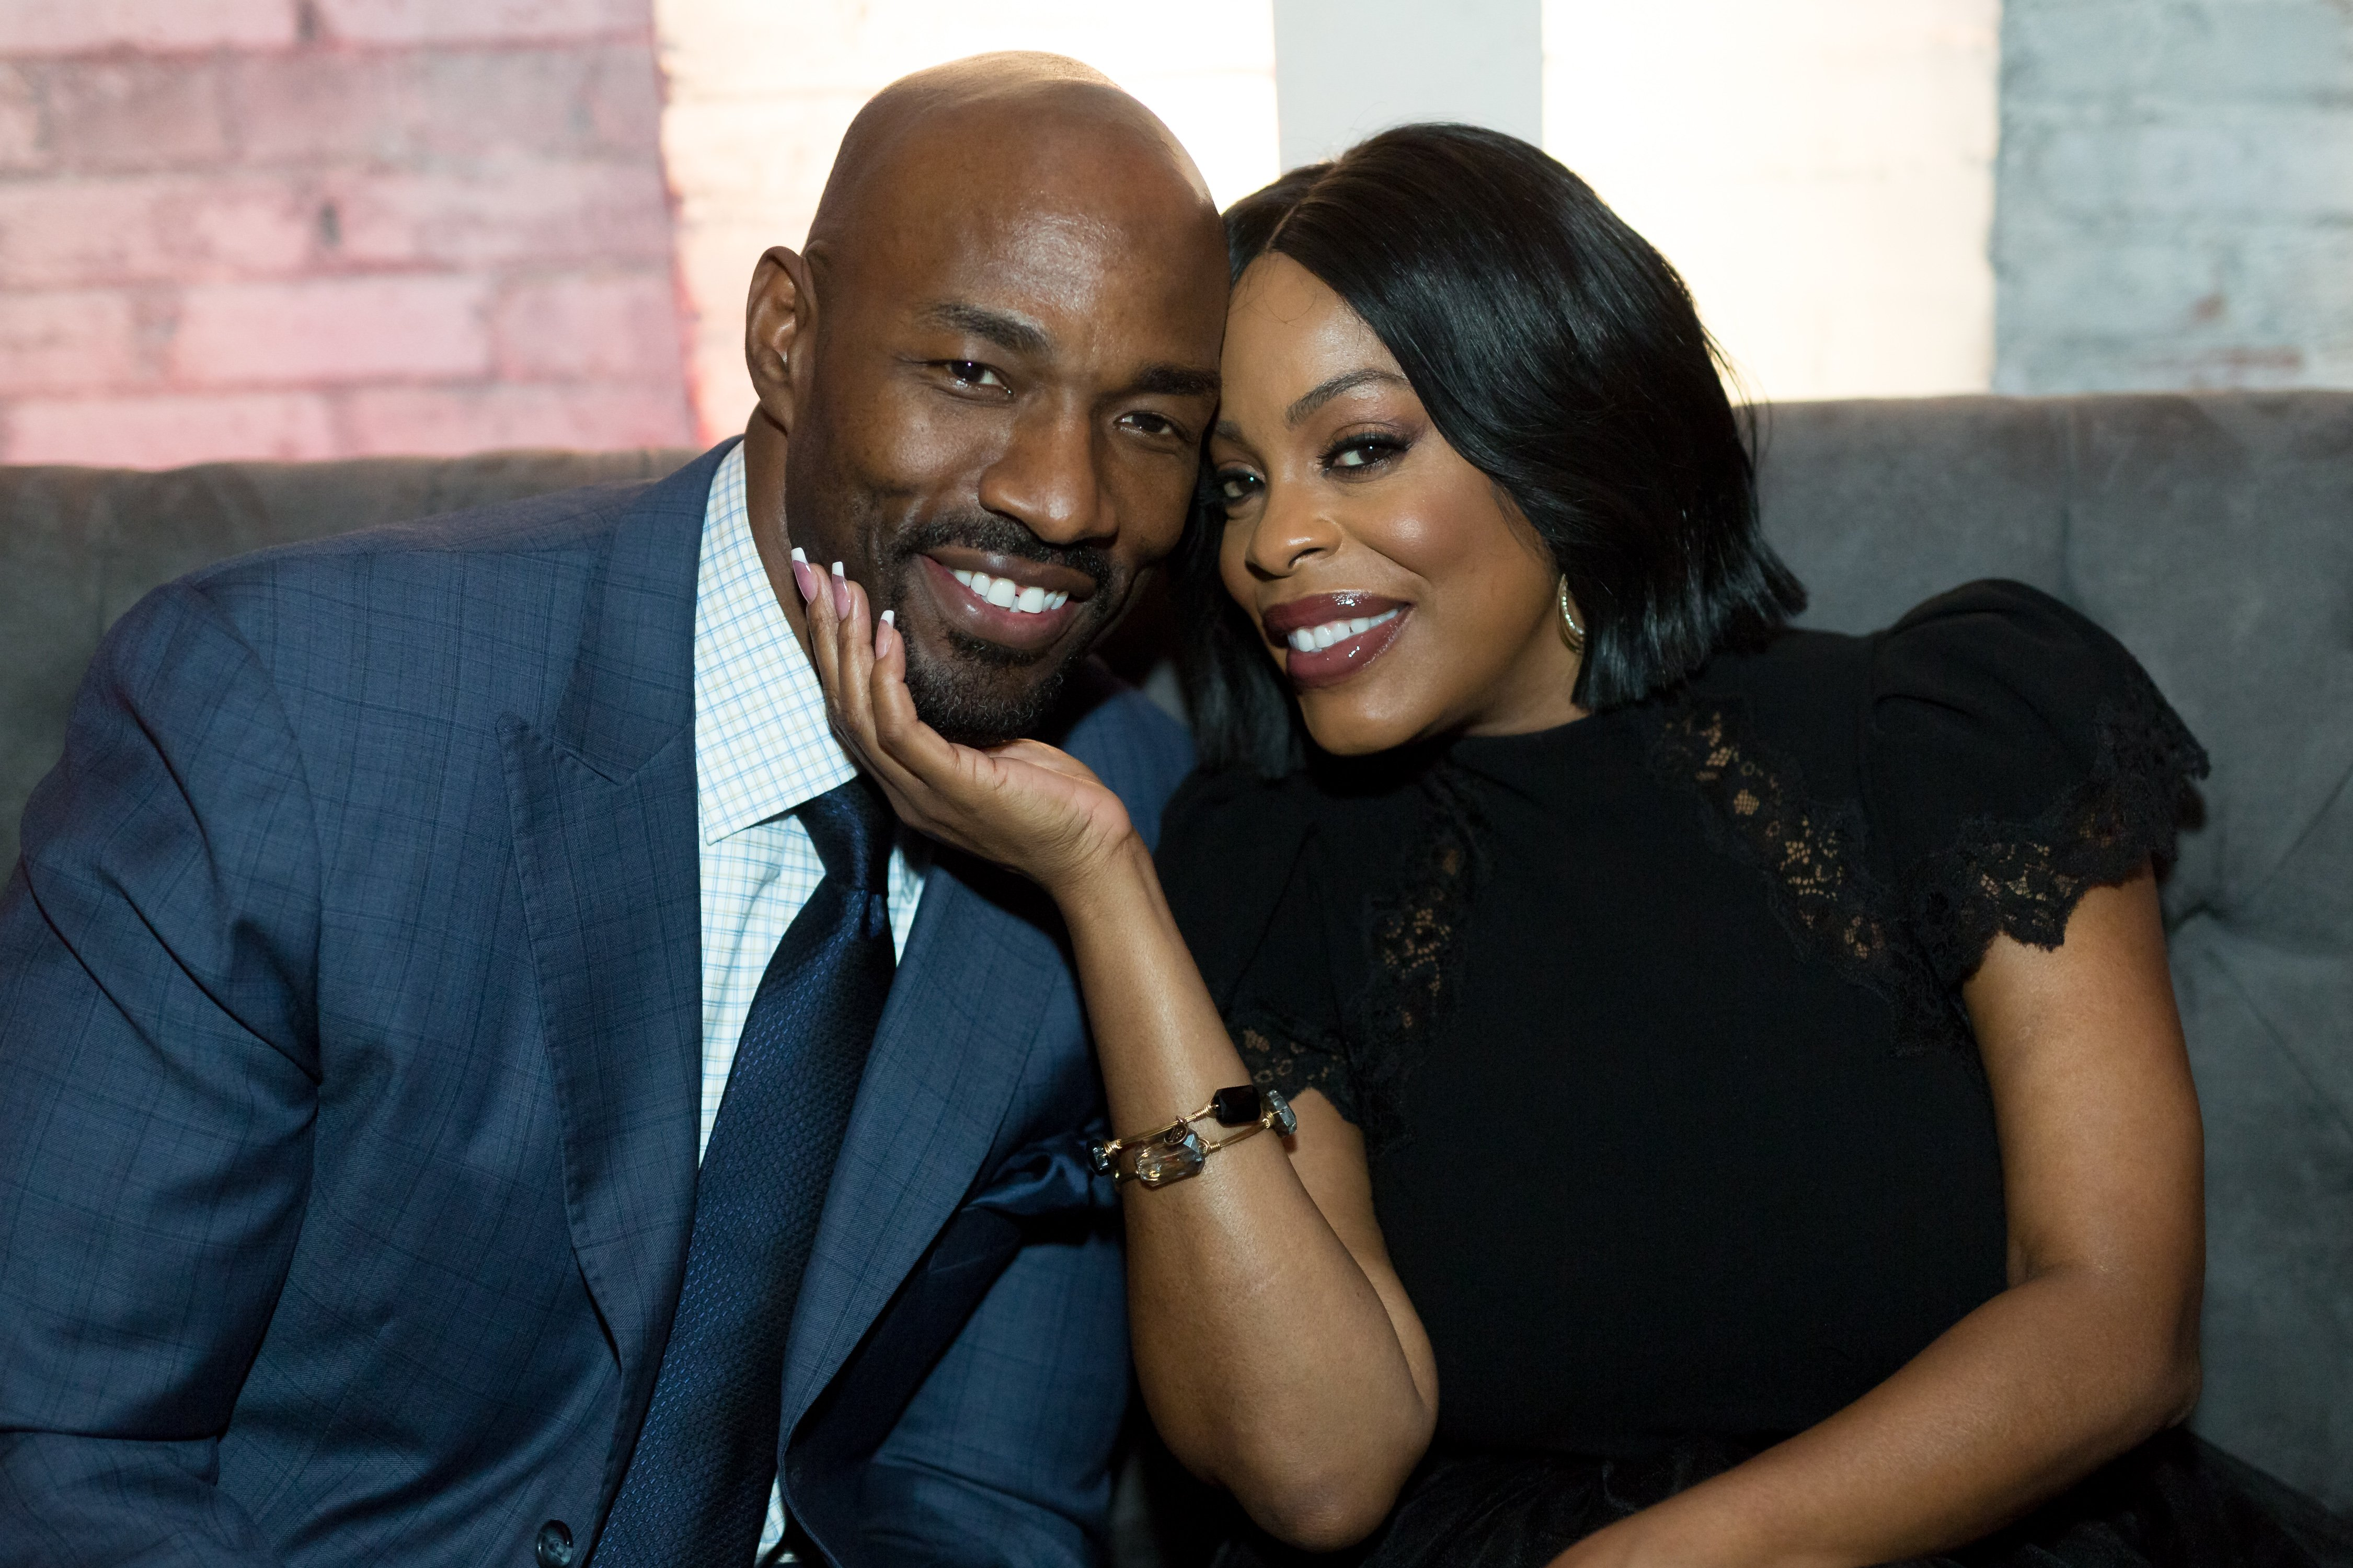 Jay Tucker and Niecy Nash attending an event in November 2017. | Photo: Getty Images